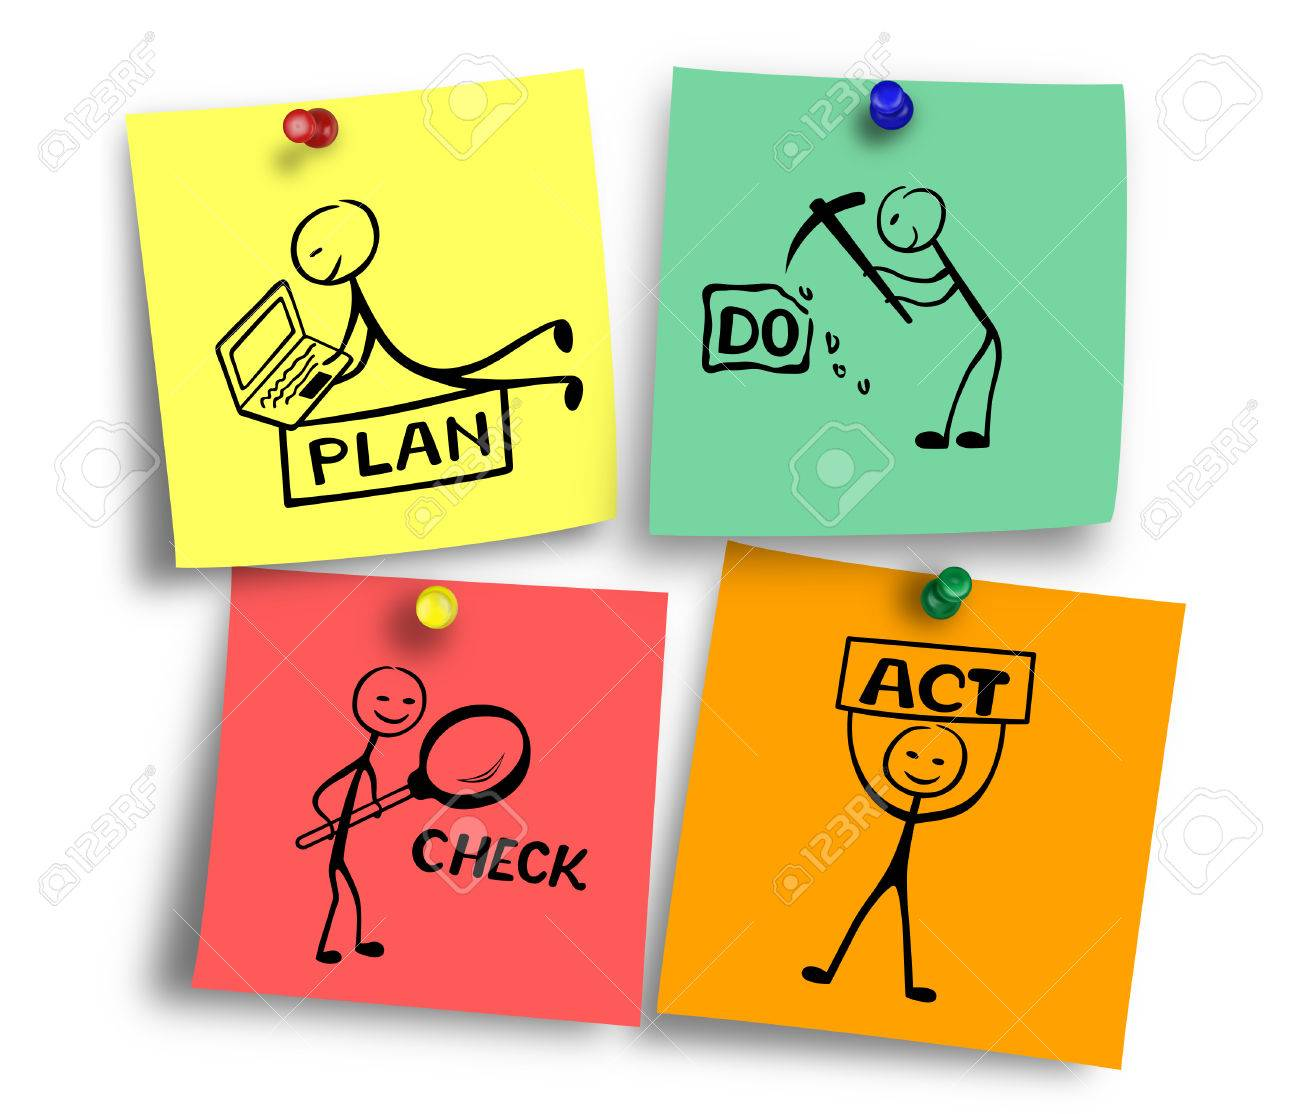 Illustration of Plan do check act concept on colorful notes - 50120109